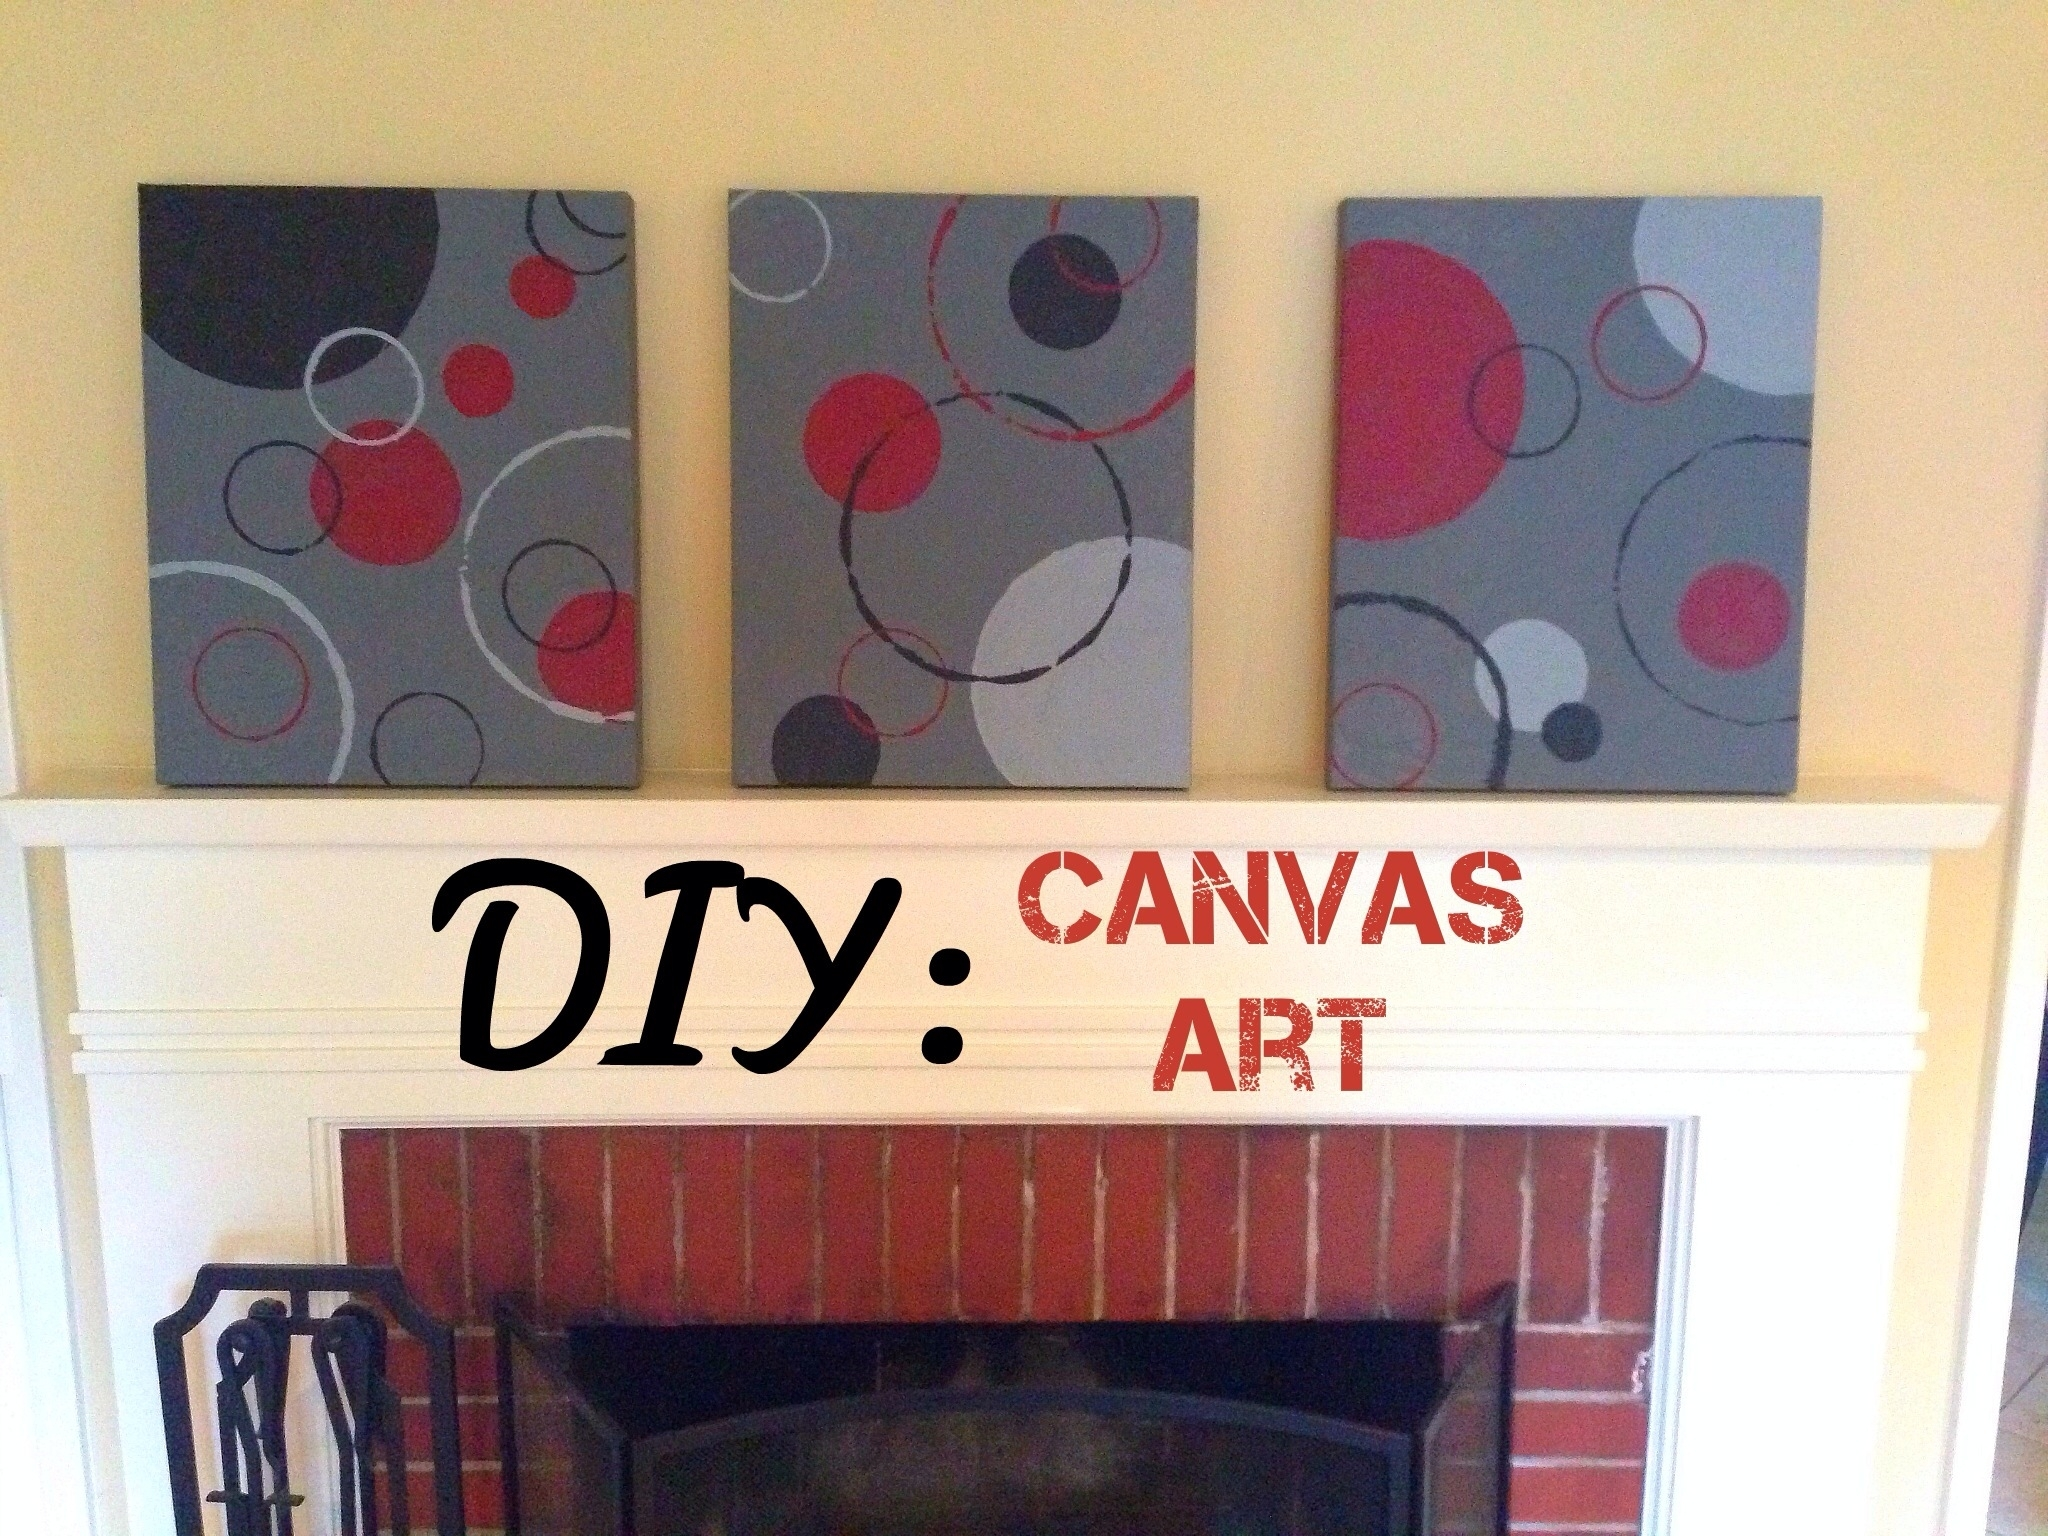 Diy Canvas Art Circles u2013 Bulldogs And Brown Sugar With 2018 Abstract Circles Wall Art & Displaying Photos of Abstract Circles Wall Art (View 17 of 20 Photos)